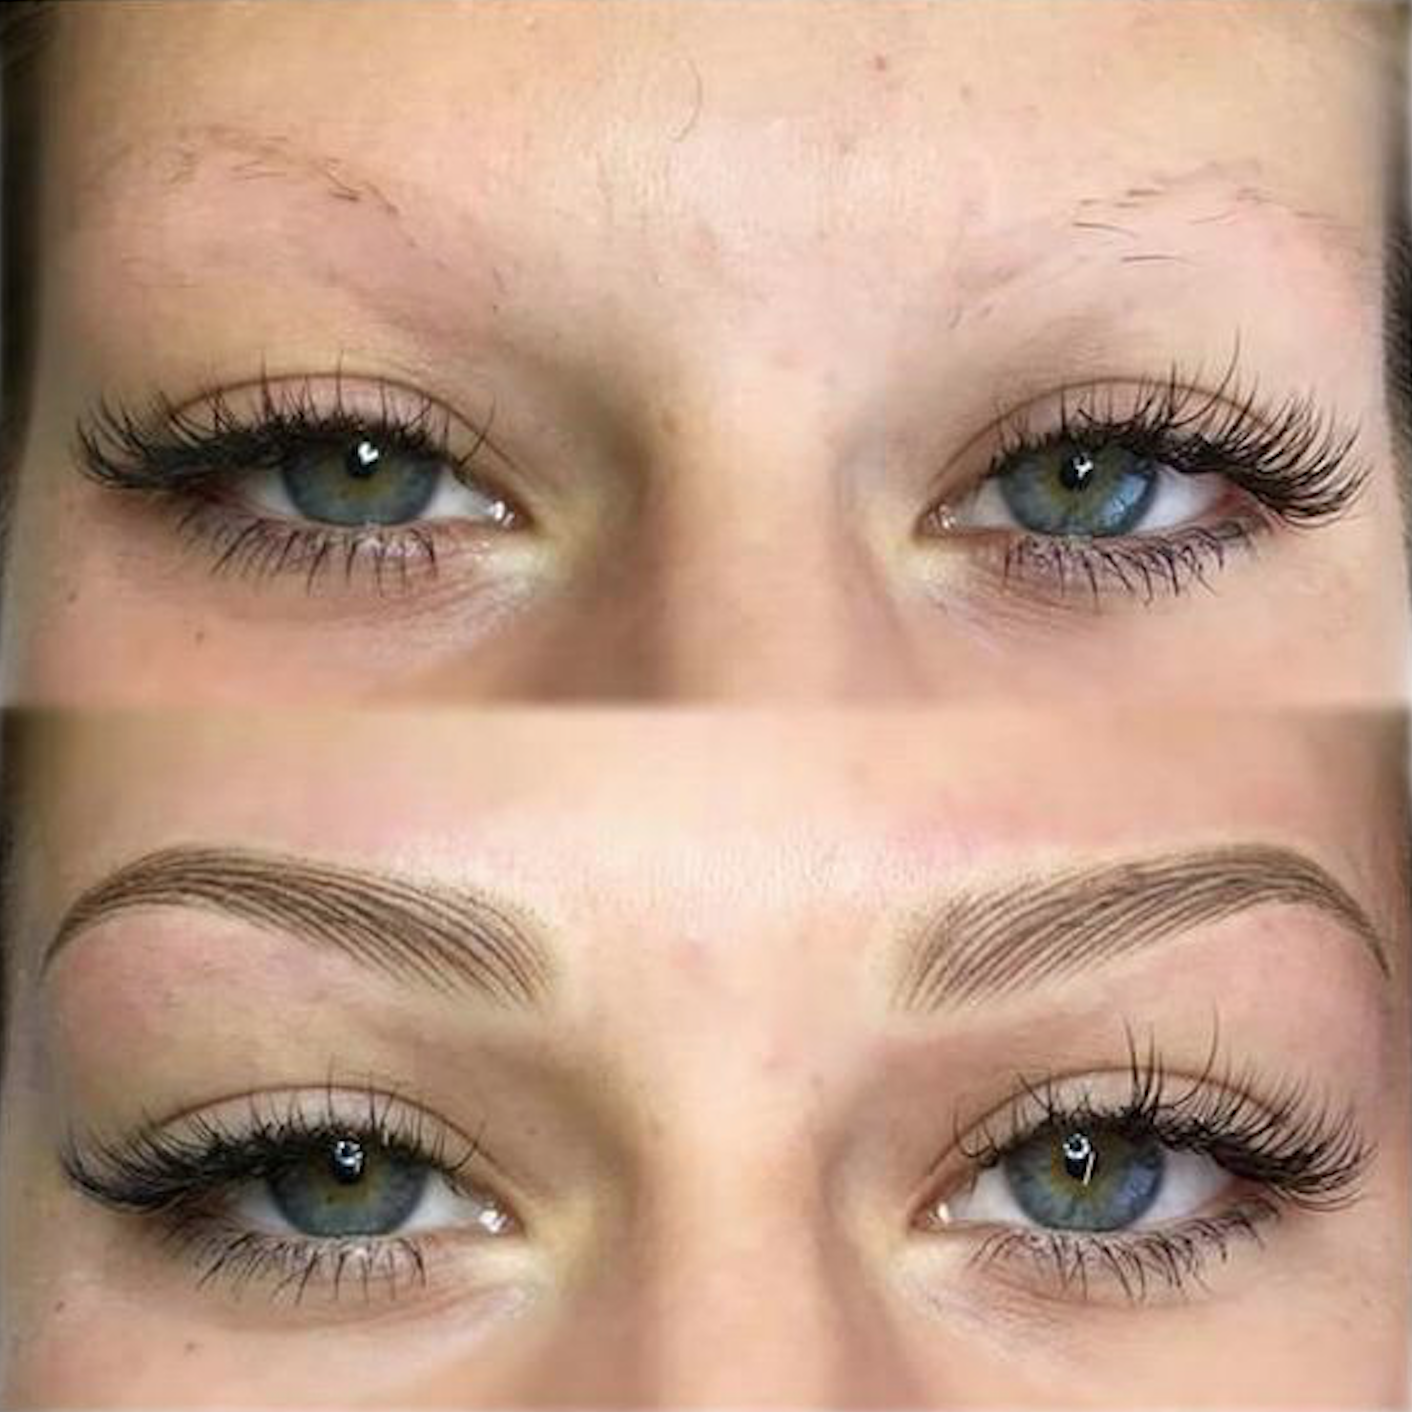 Pin By Milica Ivetic On Iscrtavanje Obrva Eyebrows Brows